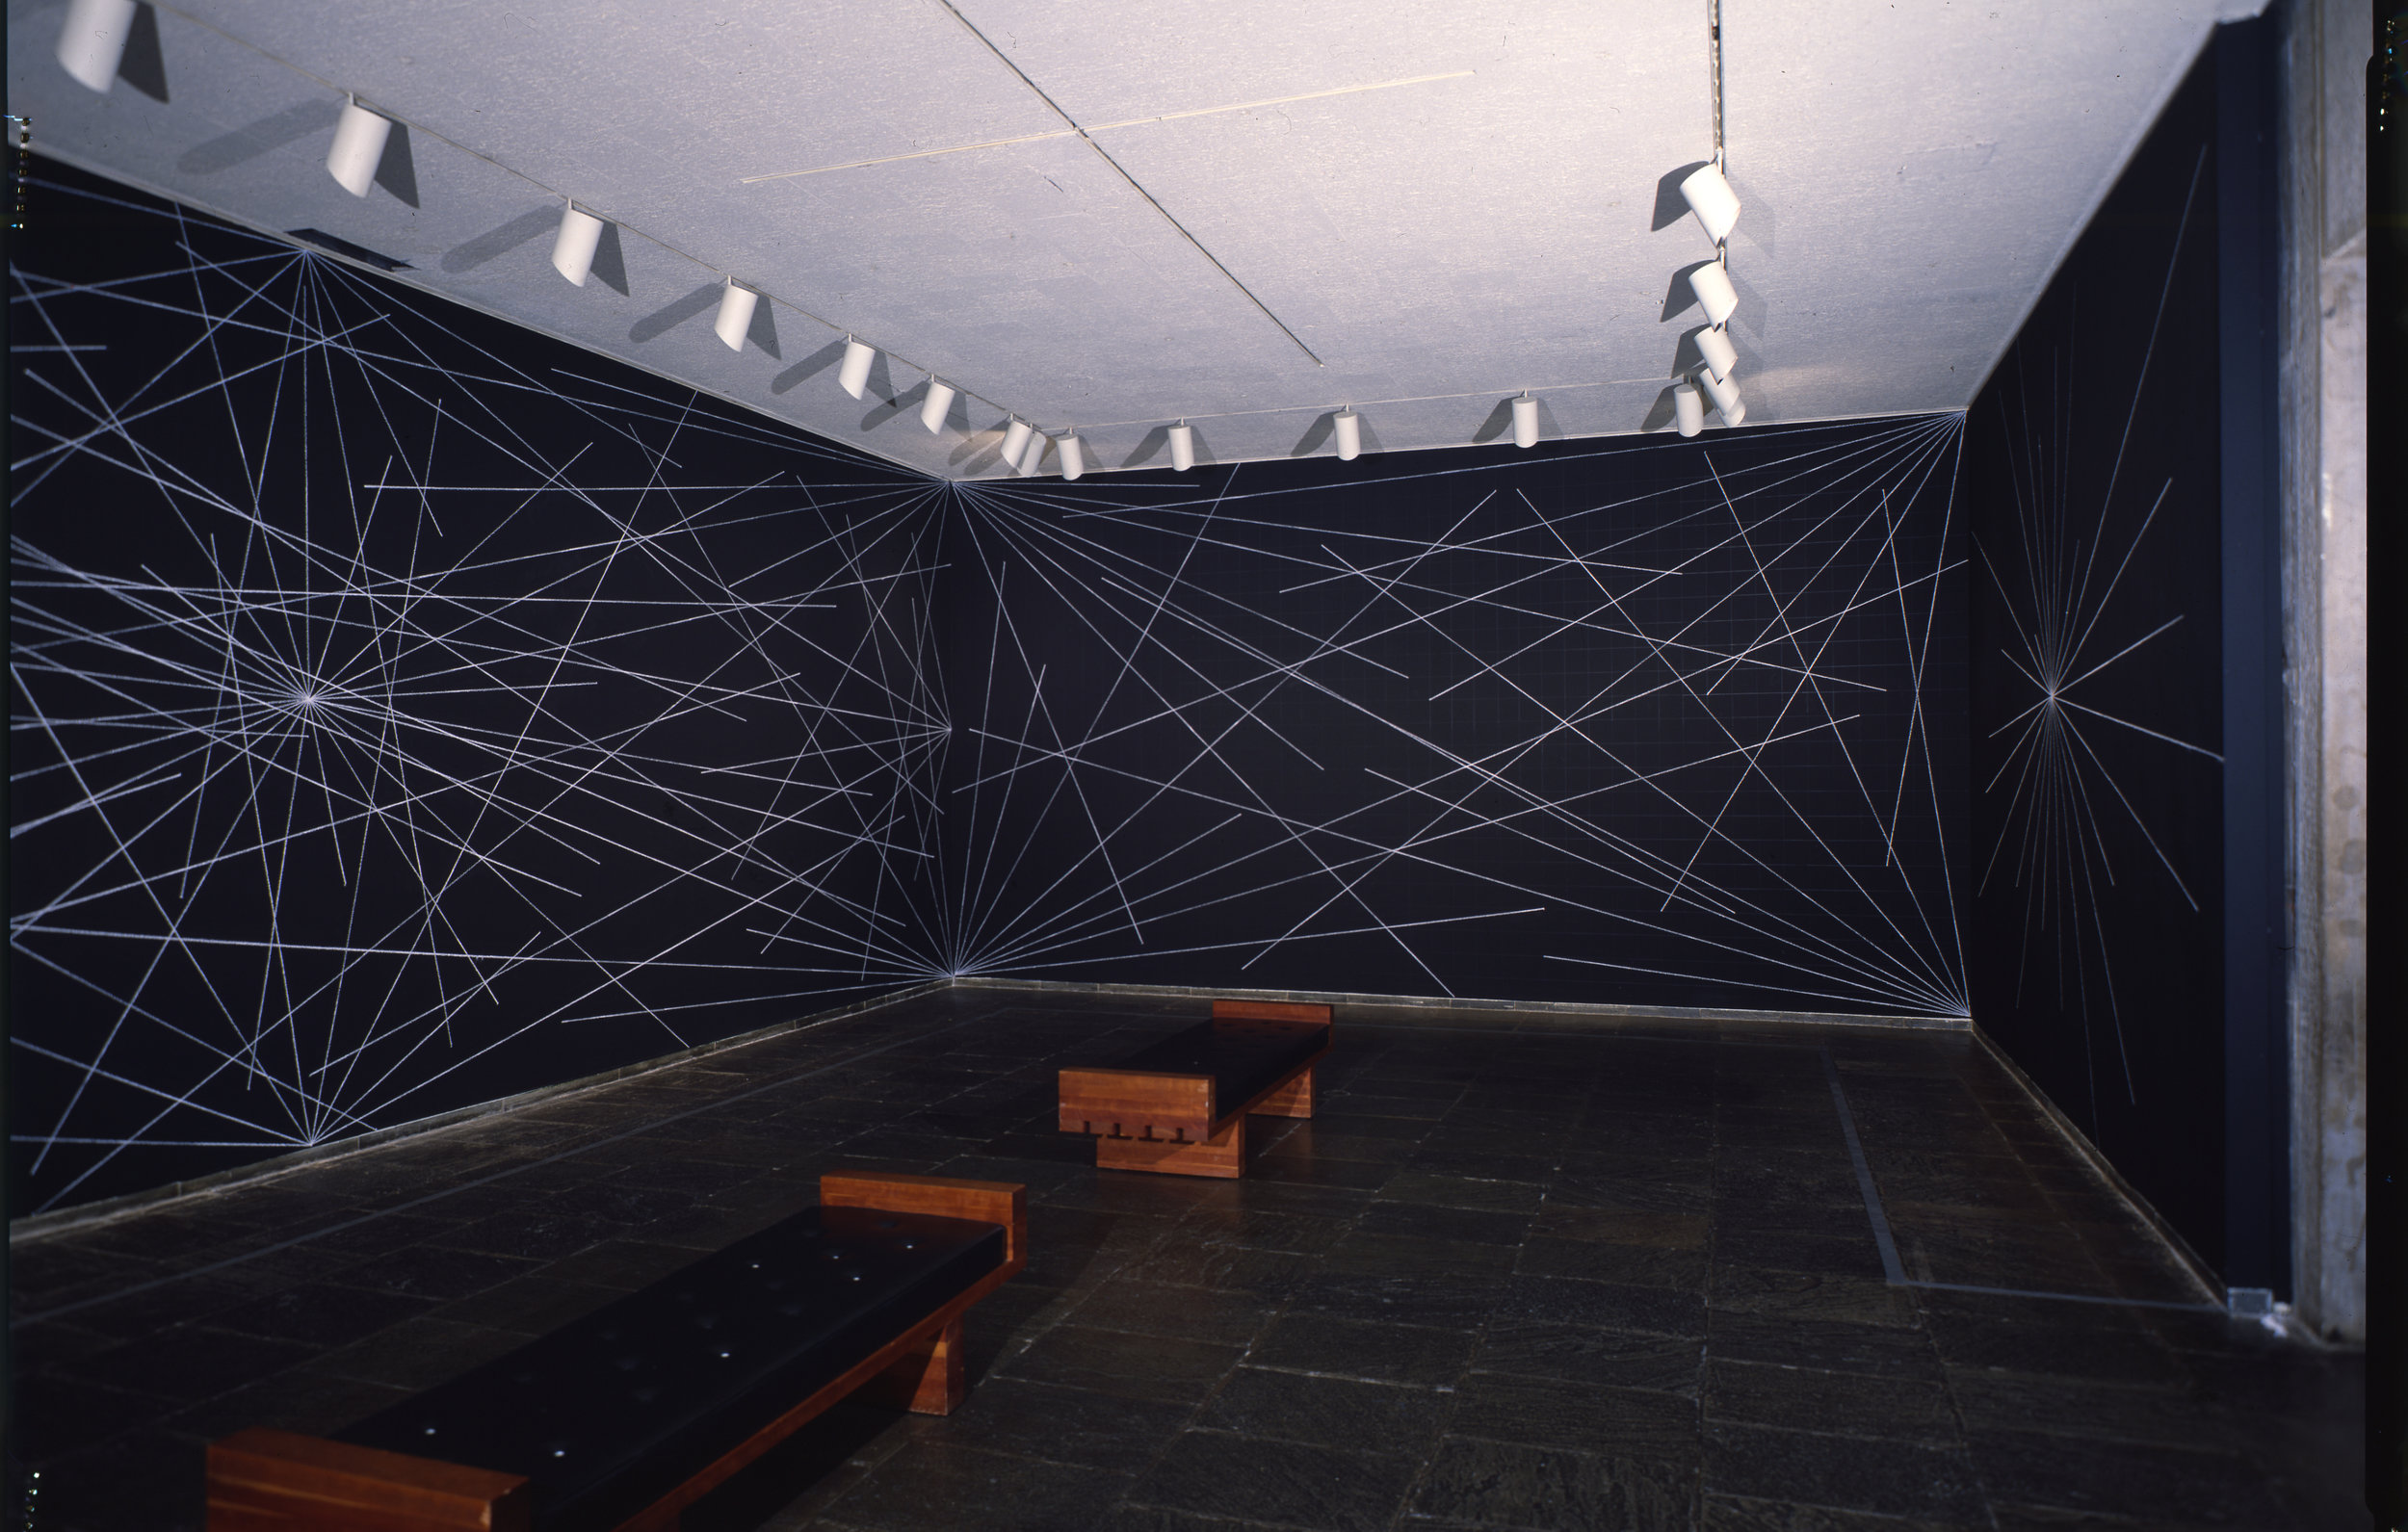 Sol LeWitt (1928-2007), Wall Drawing #289, 1976